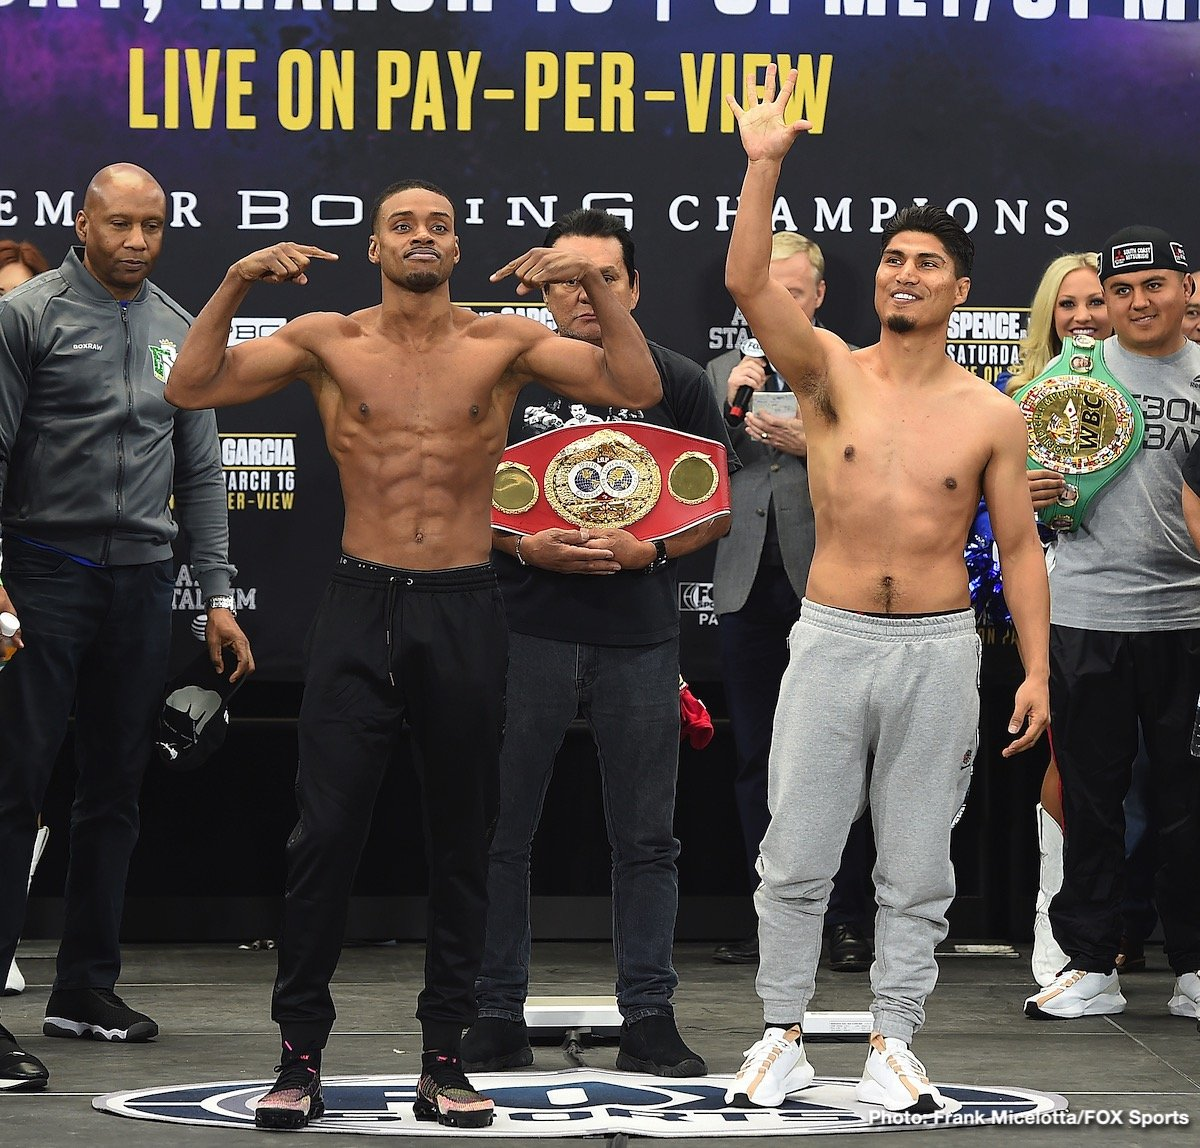 Errol Spence Jr. - Though he might not yet have finally, official retired for good, Floyd Mayweather's star has faded. Apart from fans asking whether or not the 42 year old great will return for another mega-bucks payday of a fight, or an exhibition, there isn't much talk about Mayweather any longer. Floyd did his thing, for a number of years at top, top level, but now fans are eager for another superstar.